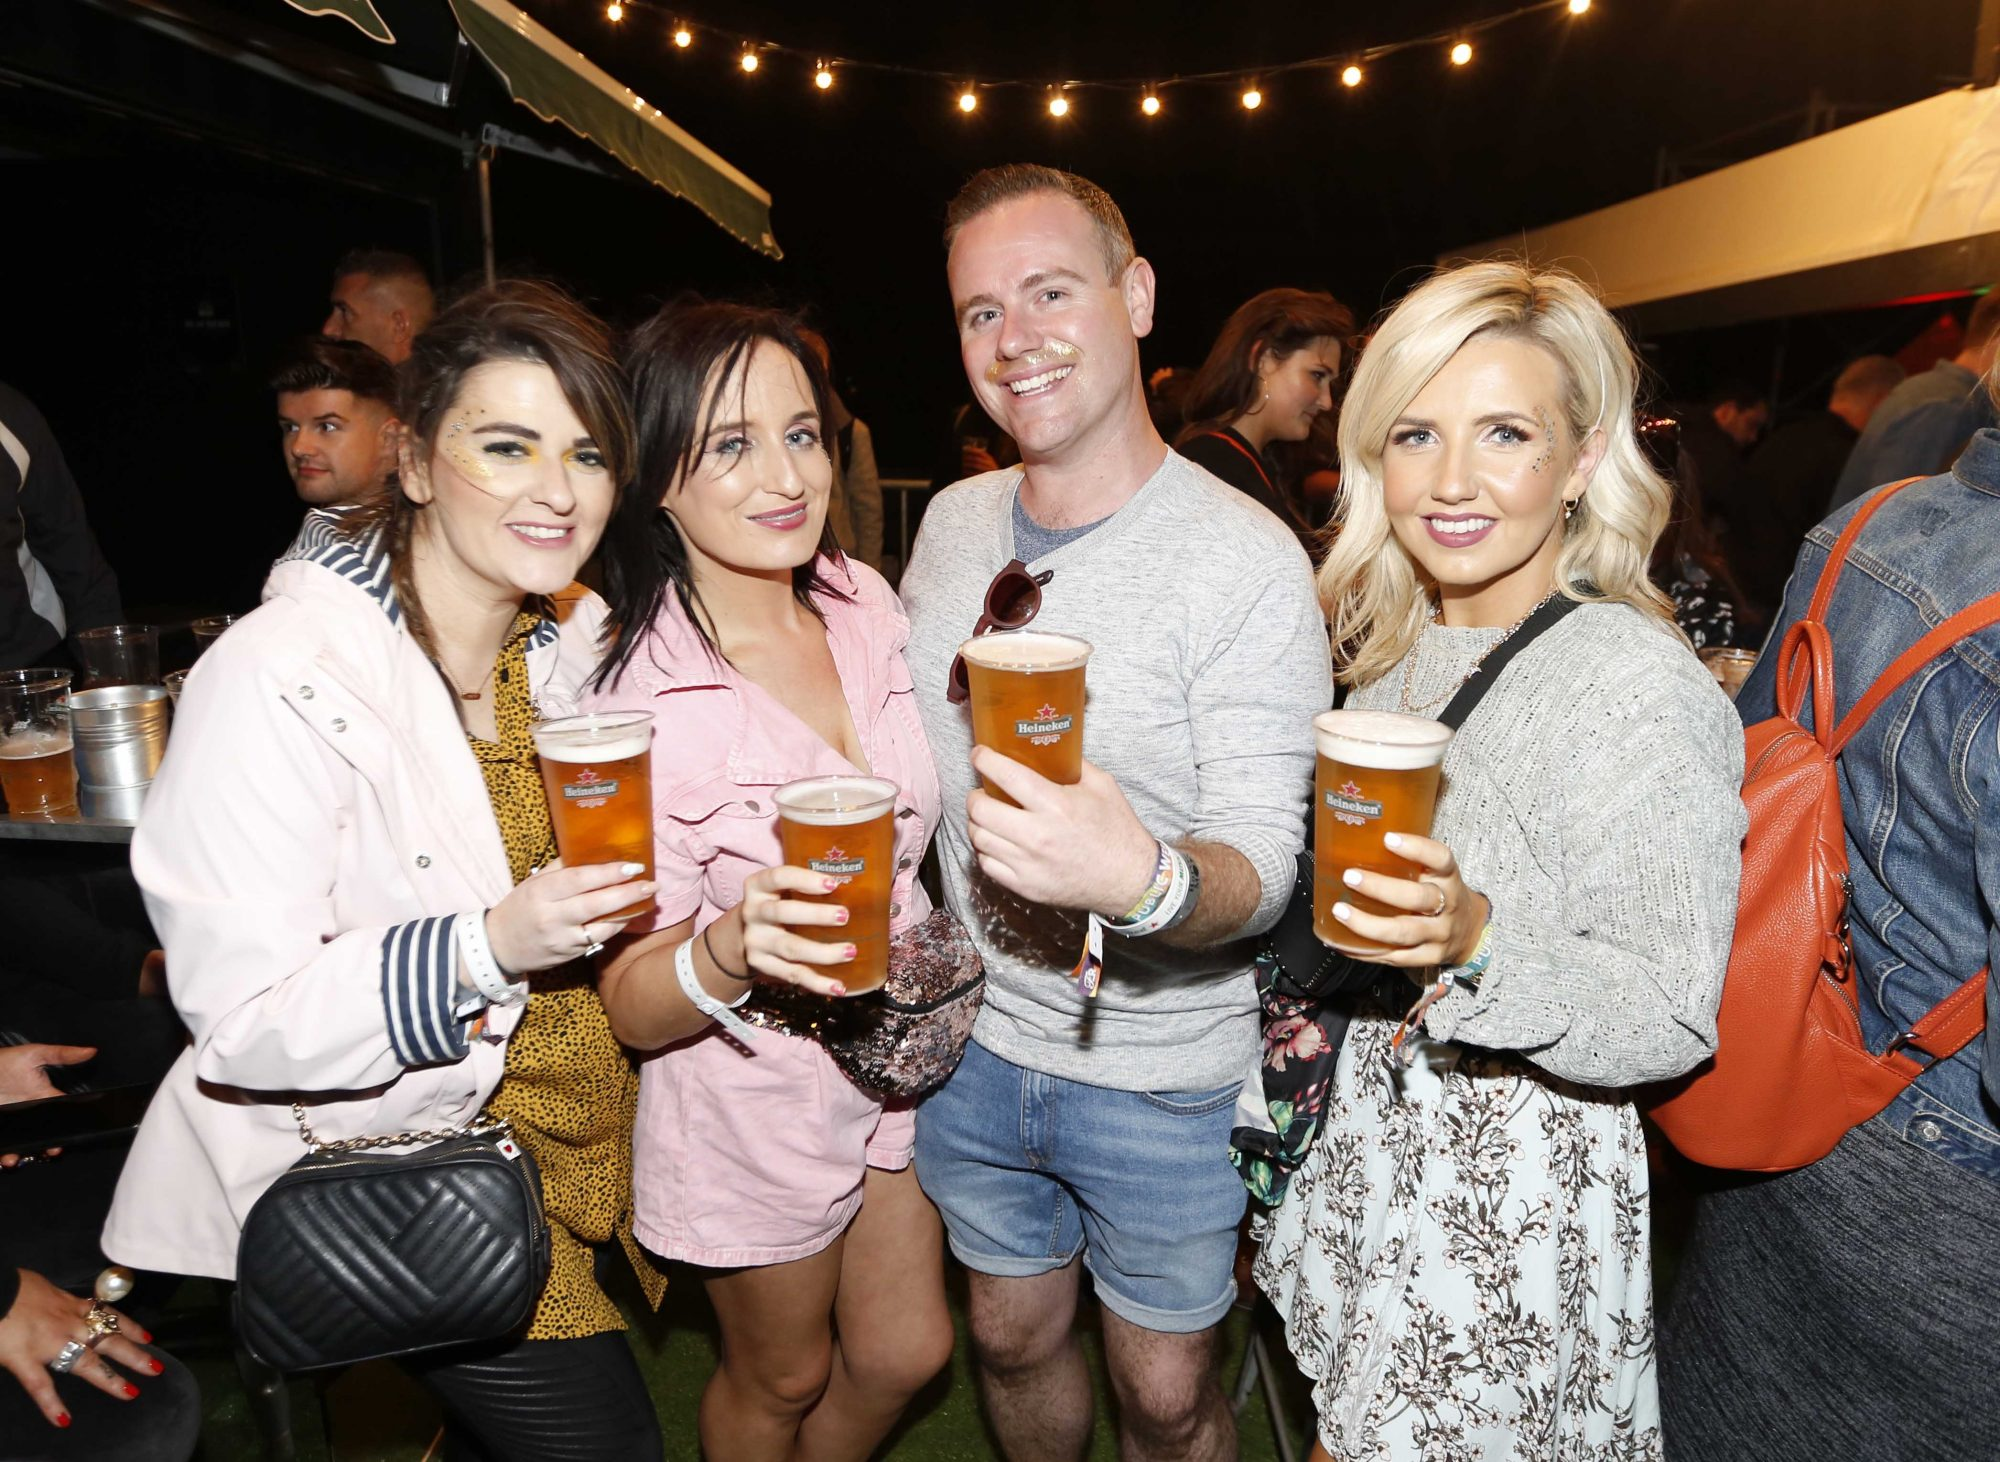 NO REPRO FEE 30/08/2019 Heineken Live Your Music Stage at Electric Picnic 2019. Pictured are (LtoR) Roisin Cummings, Nicola Barron, Neil Byrne and Tamara Matthews at the Heineken Live Your Music Stage at Electric Picnic 2019. This year's area is an enormous structure on two levels, with a glass roof that will keep festival-goers dry but let them dance beneath the sun and stars! The immersive and interactive lightshow has been reimagined for 2019 which, combined with the state-of-the-art soundsystem, make Live Your Music the most impressive festival stage in the country. Photo: Sasko Lazarov/Phorocall Ireland